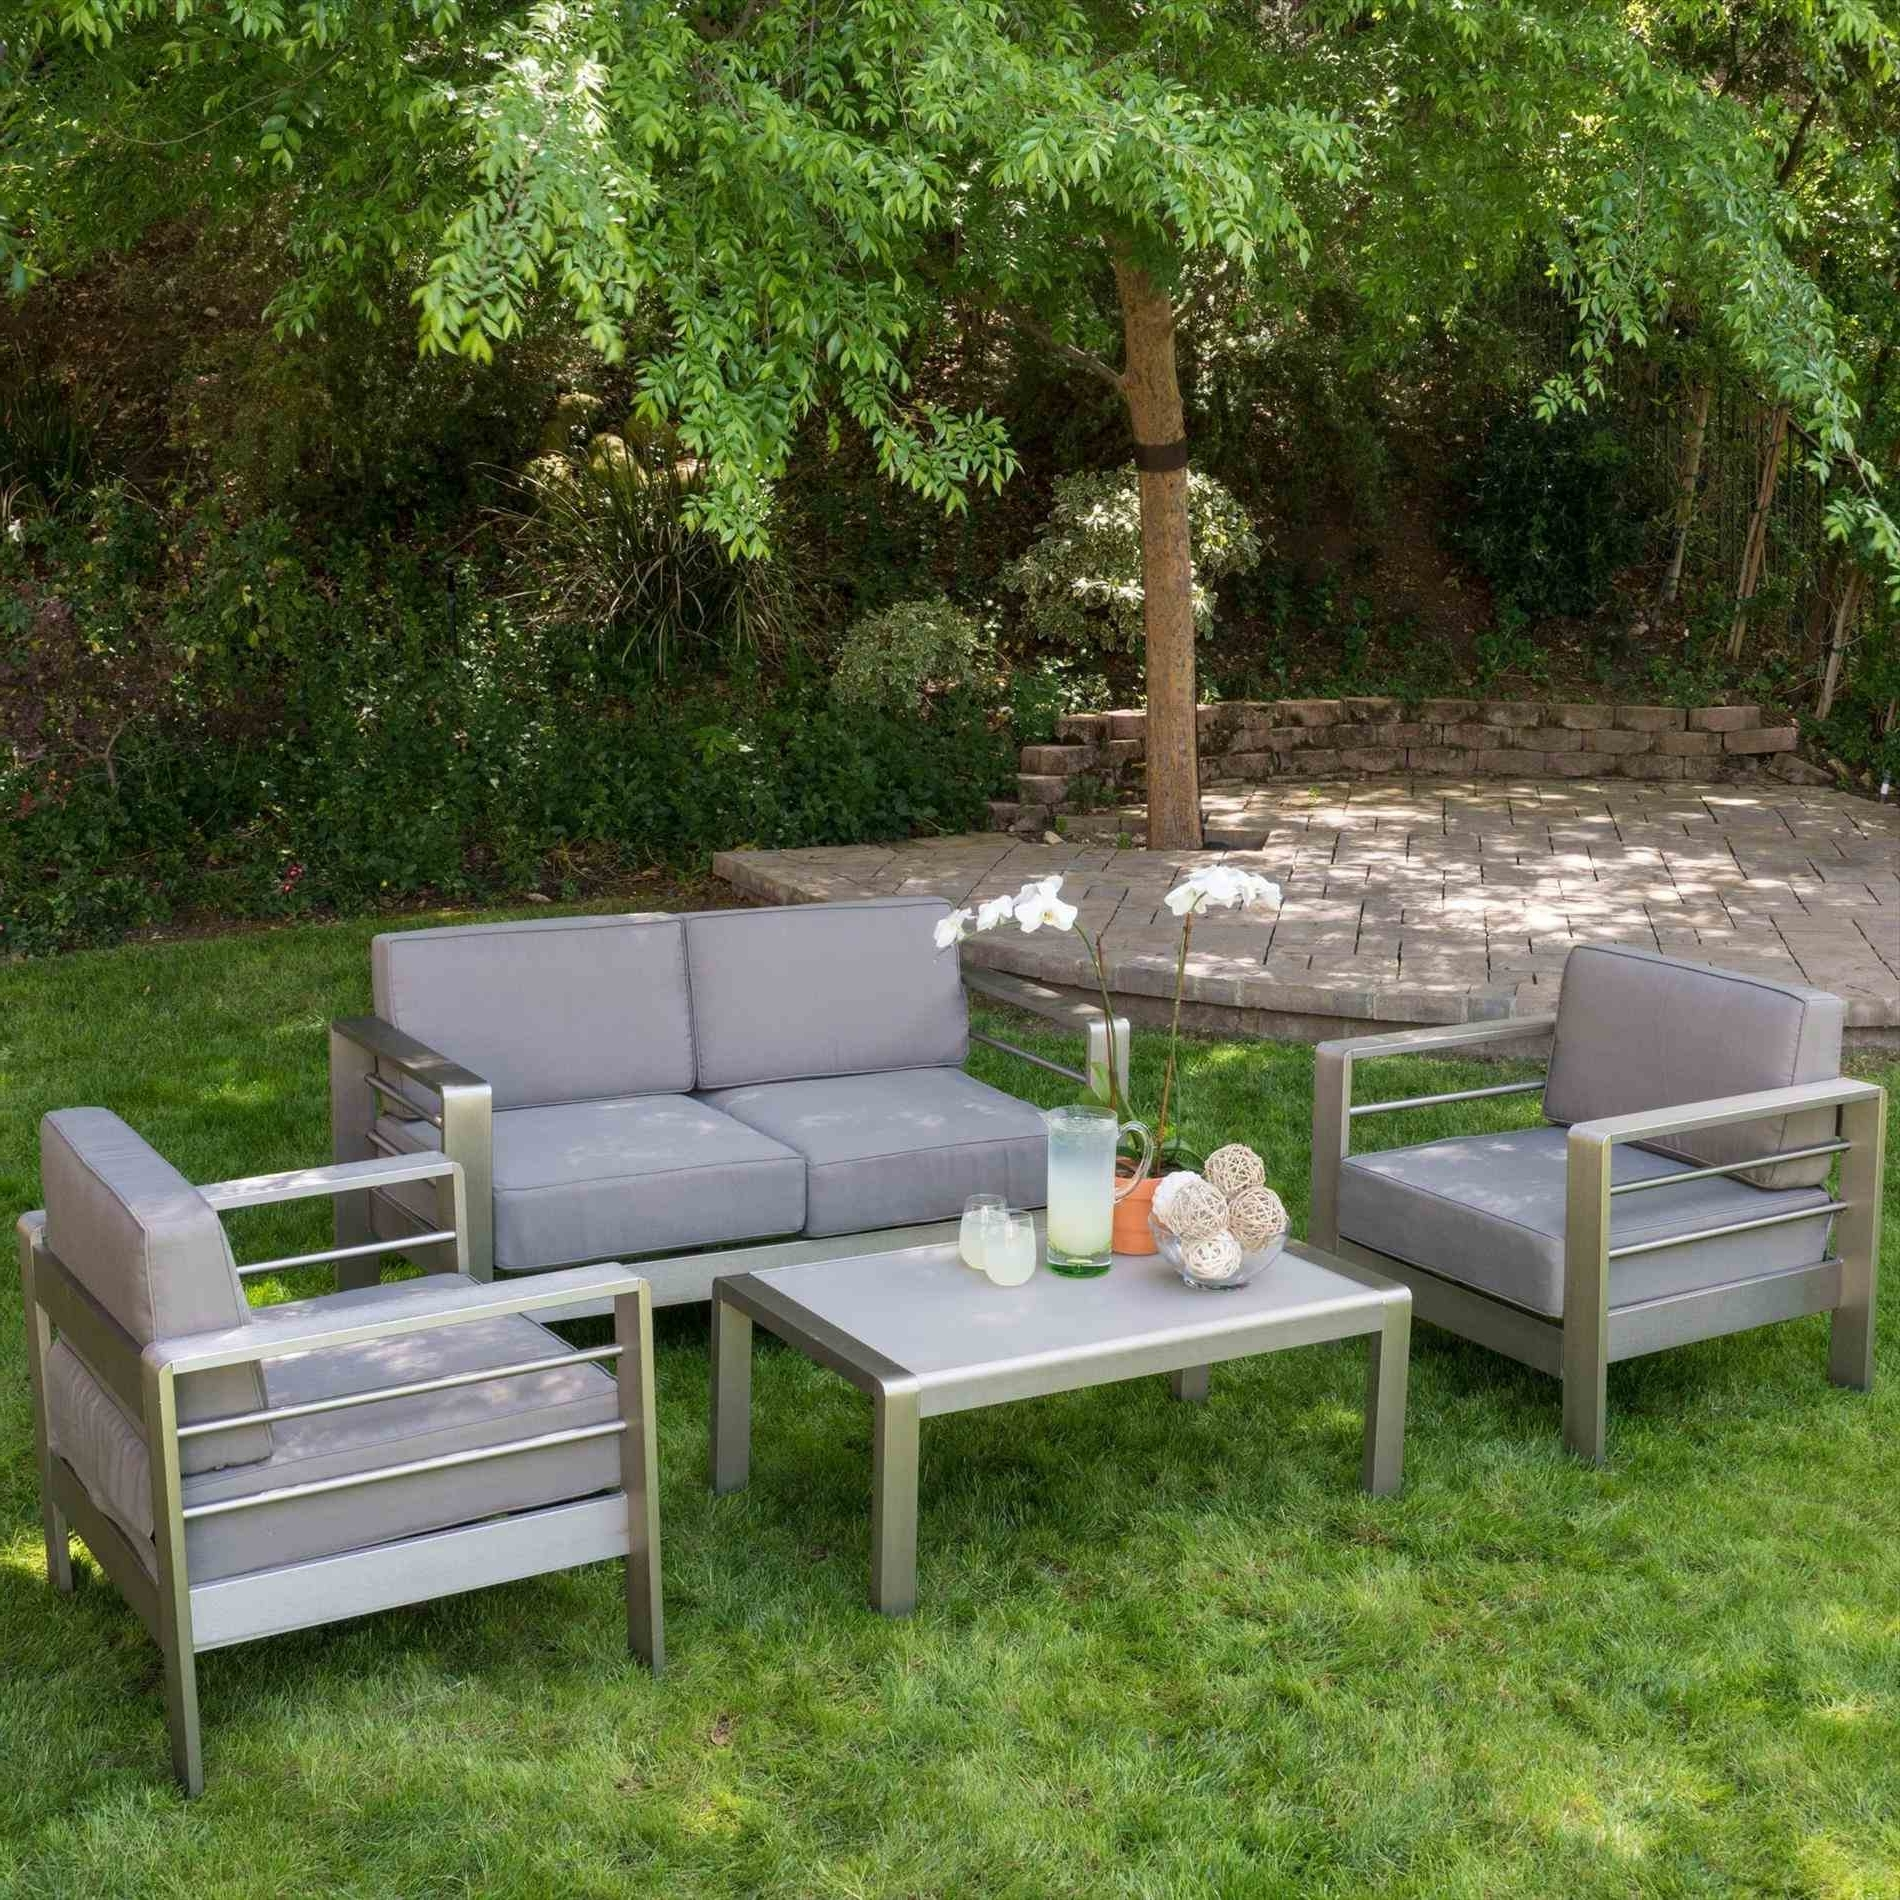 Most Popular Patio Conversation Sets Under 200 Regarding Under 200 Outdoor Sectional Clearance Conversation Sets Furniture (View 6 of 20)